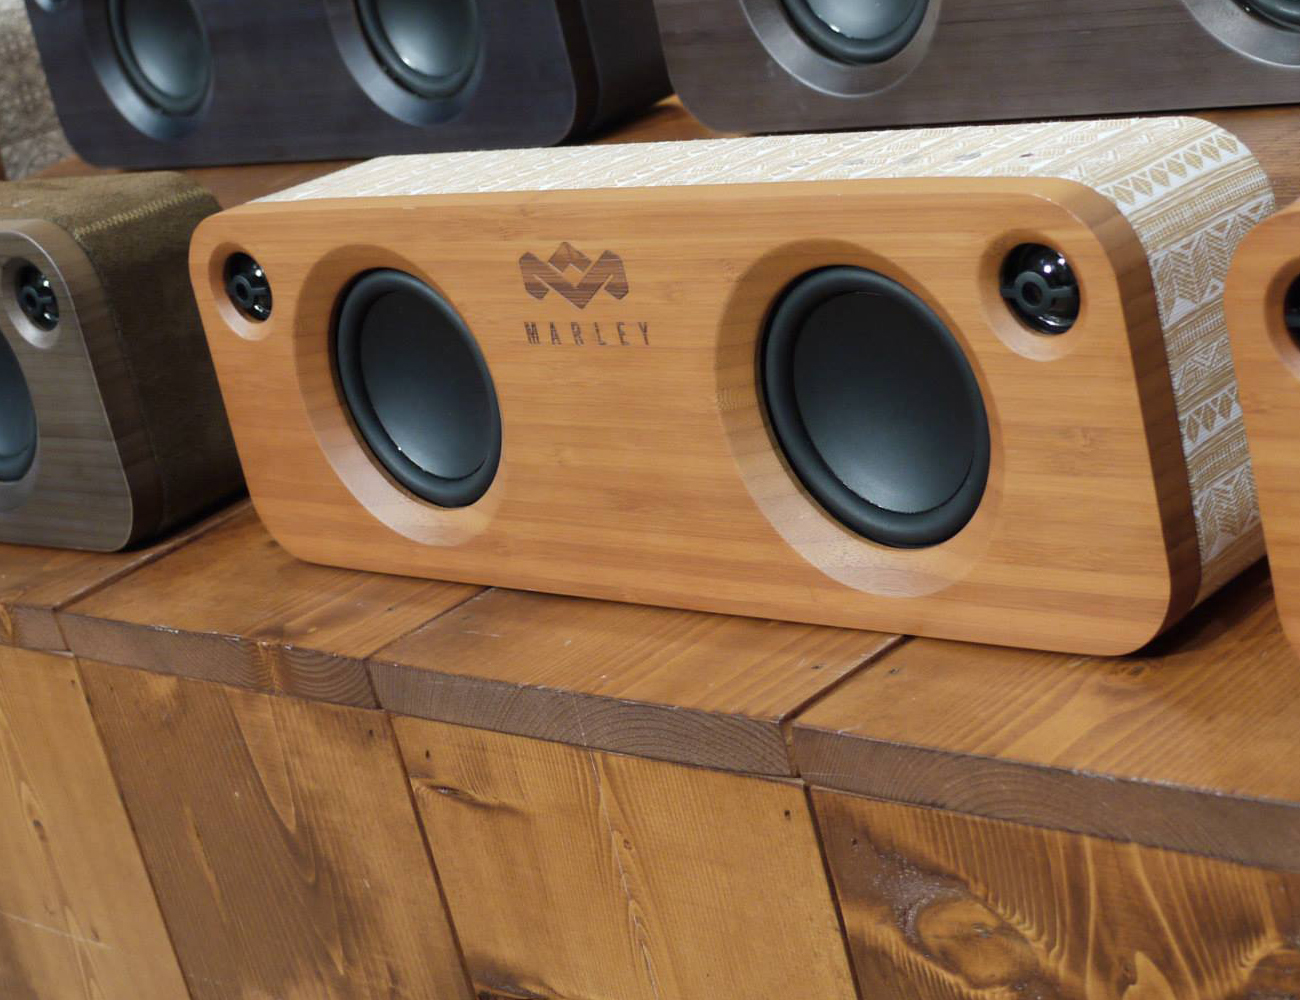 House of Marley Portable Speaker Bundle